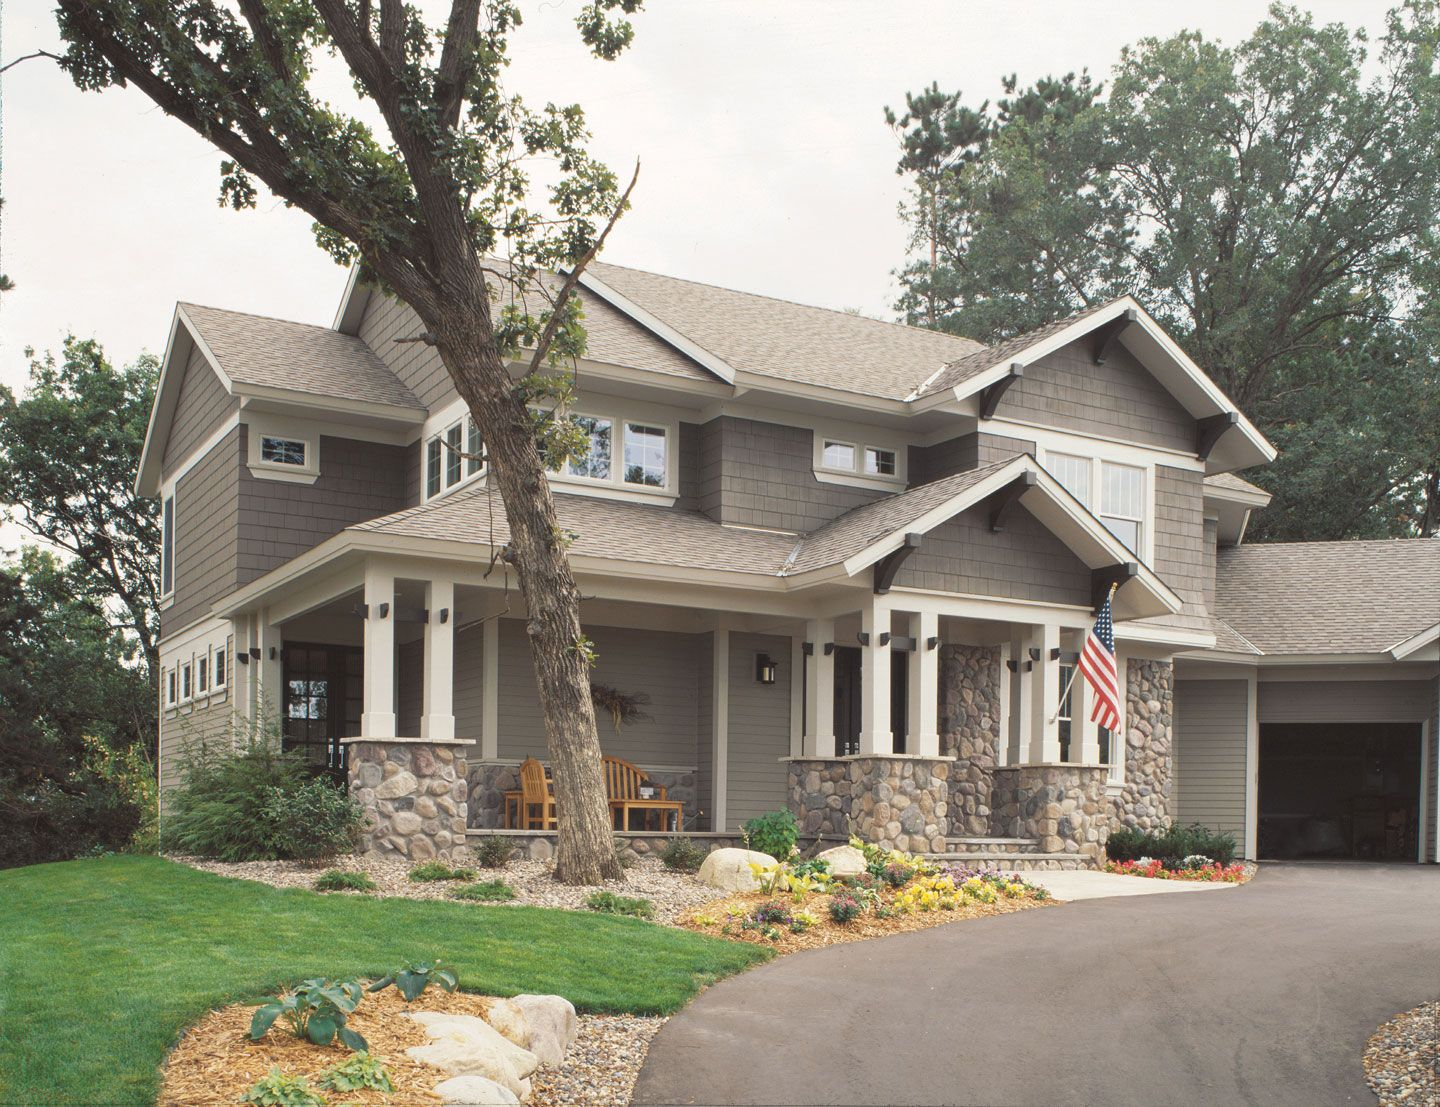 Gambrel Roof Images With James Harding Siding Google Search - Home exterior design ideas siding